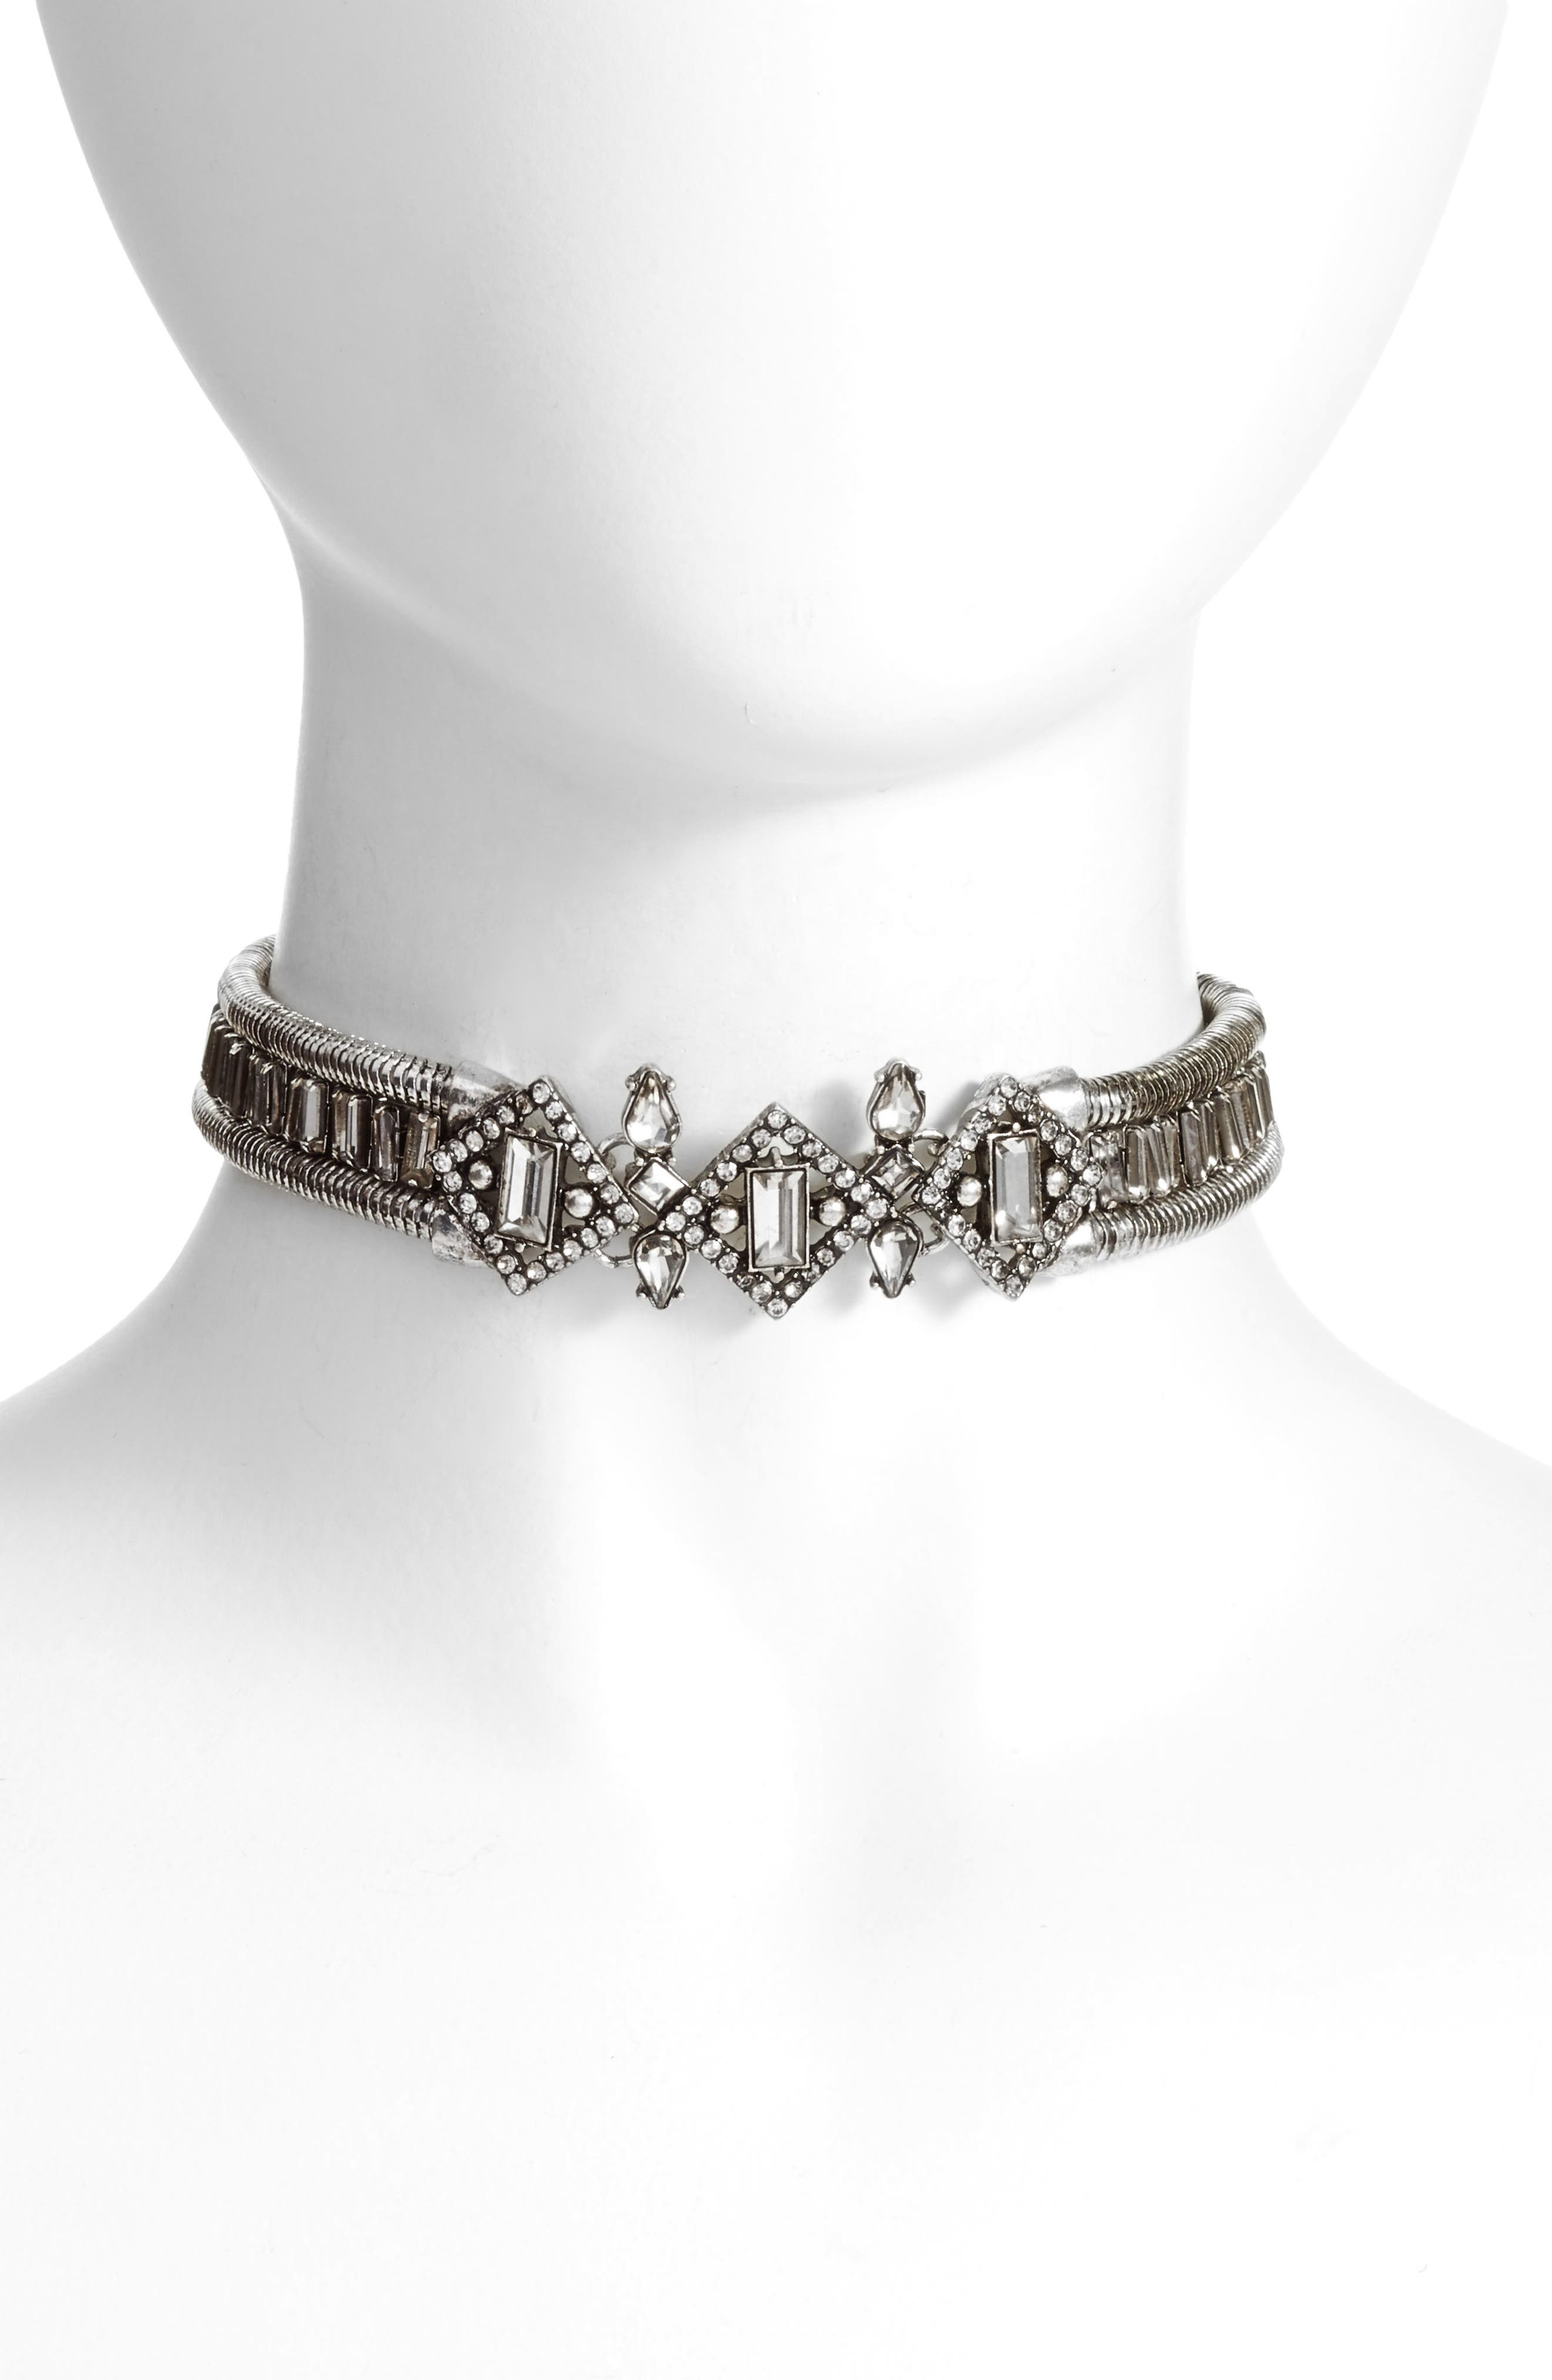 Main Image - DLNLX BY DYLANLEX Crystal Choker Necklace